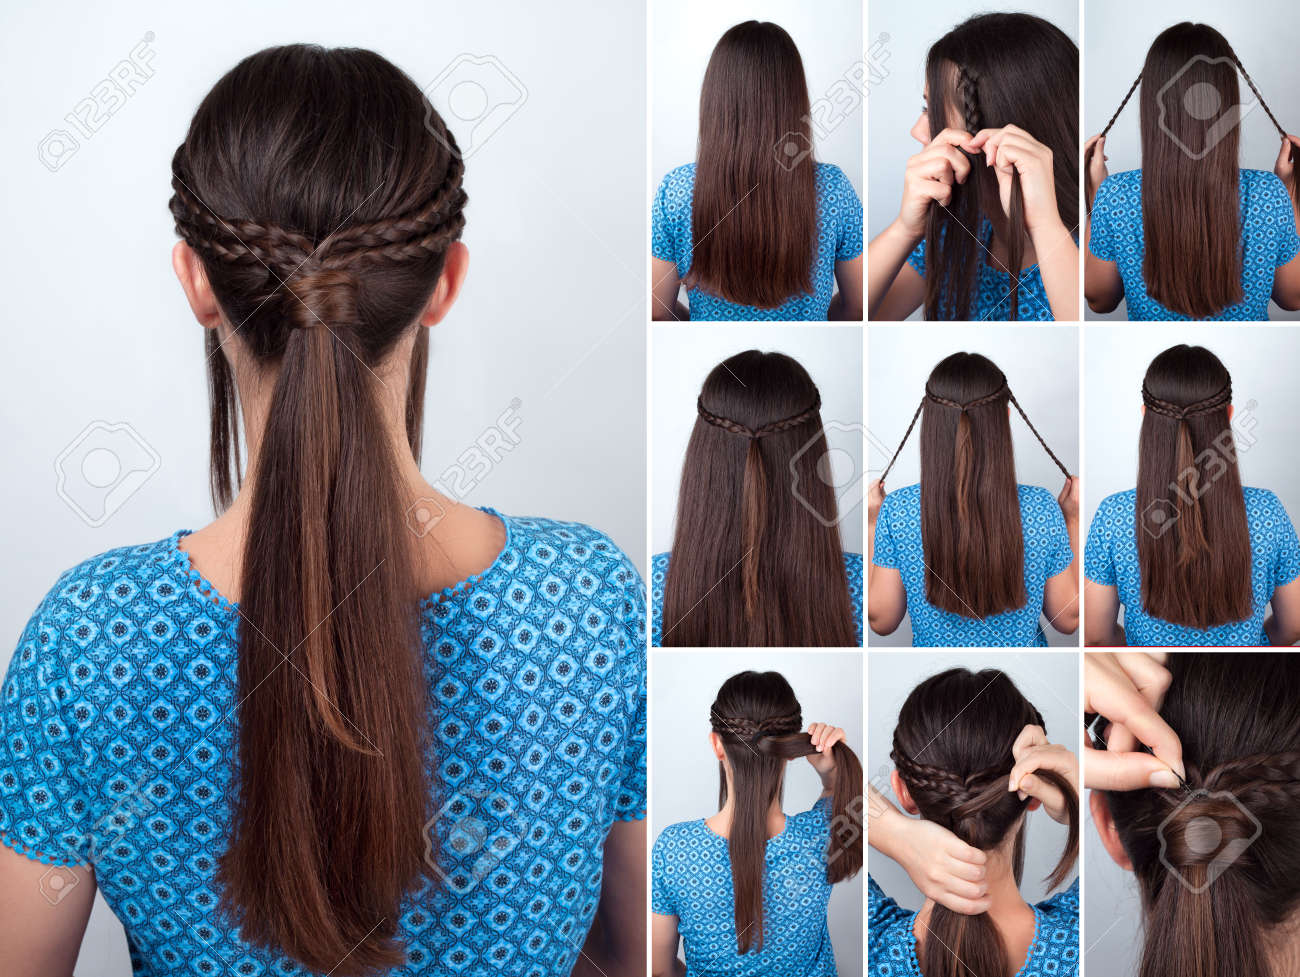 Simple Hairstyle Pony Tail With Braids Hair Tutorial. Hairstyle For Long  Hair. Hairstyle Tutorial